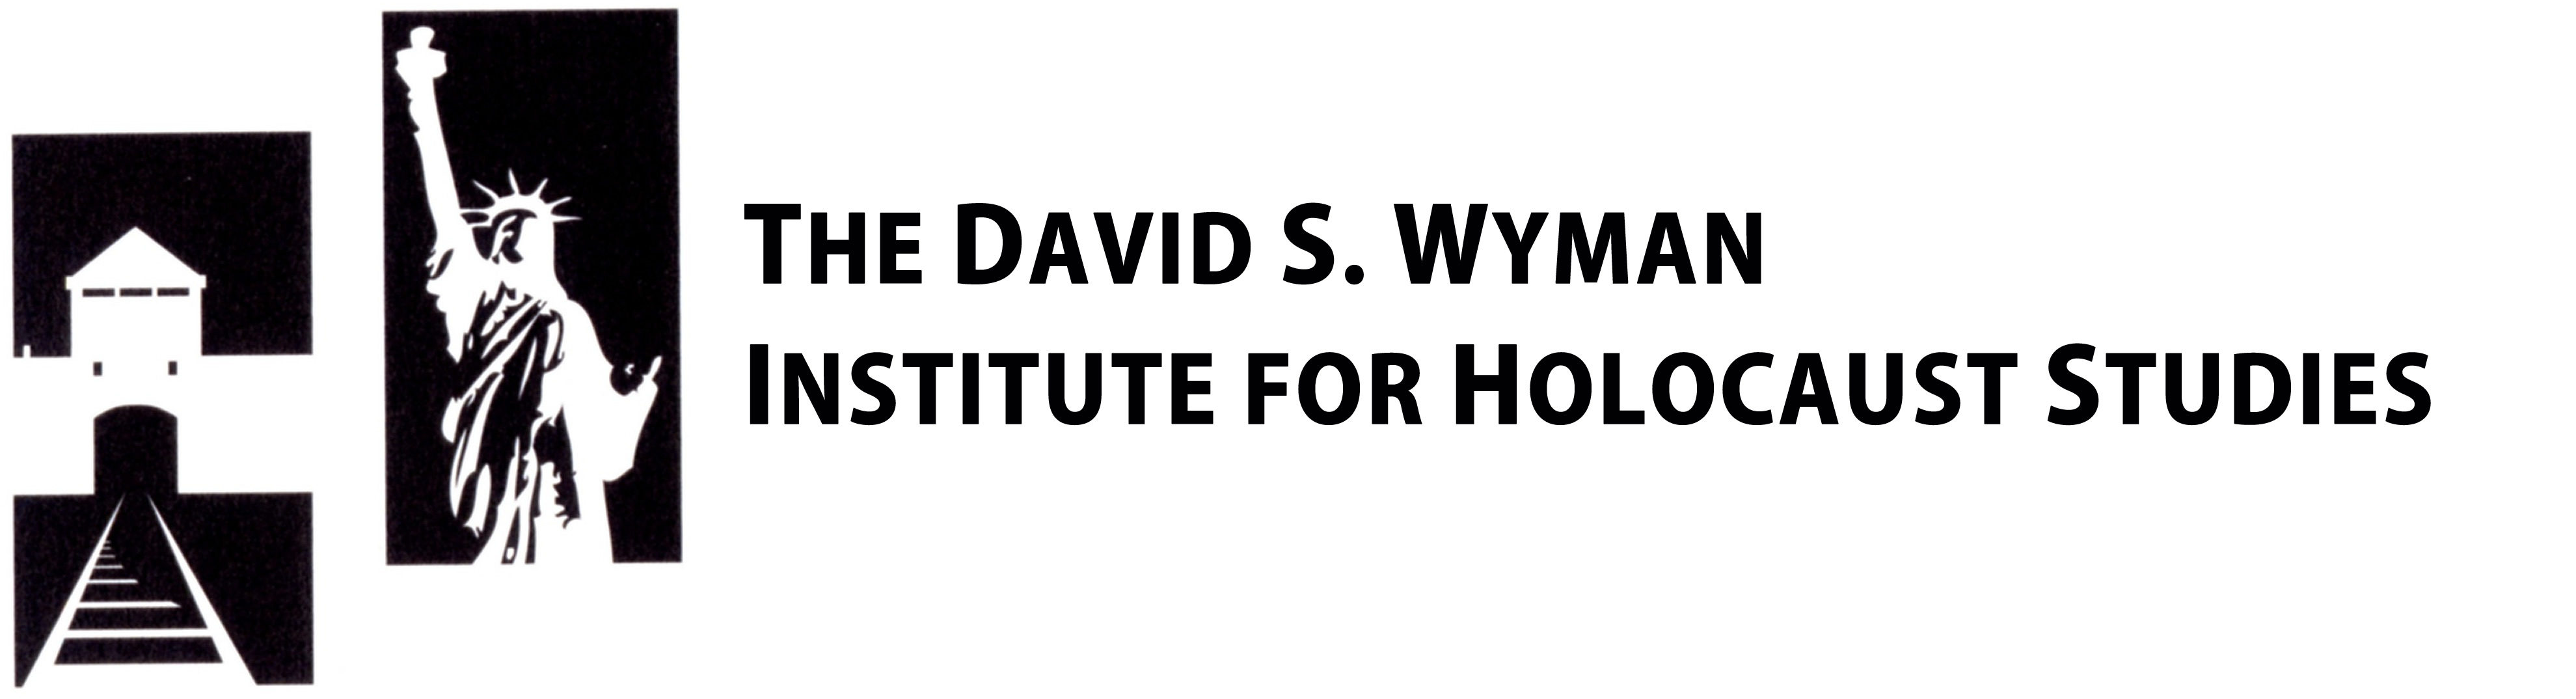 The David S. Wyman Institute for Holocaust Studies